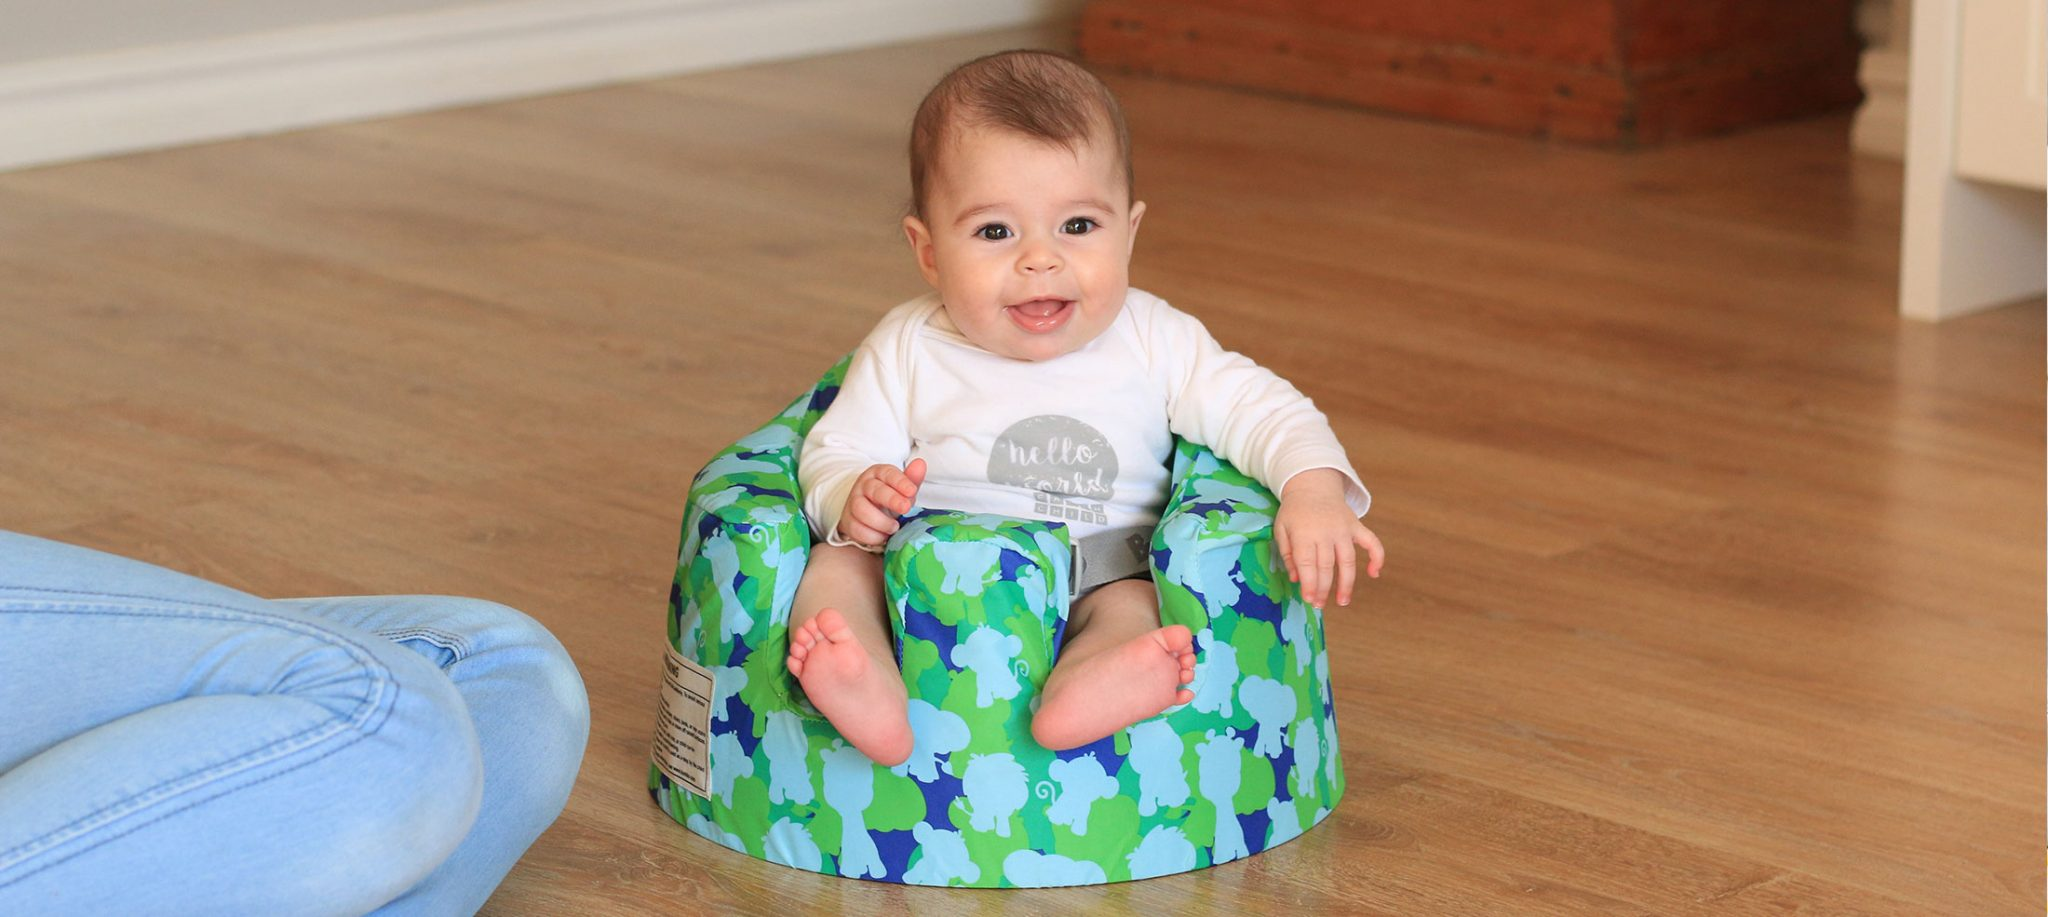 Infant Learning Chair Bumbo Usa High Quality Infant And Toddler Products